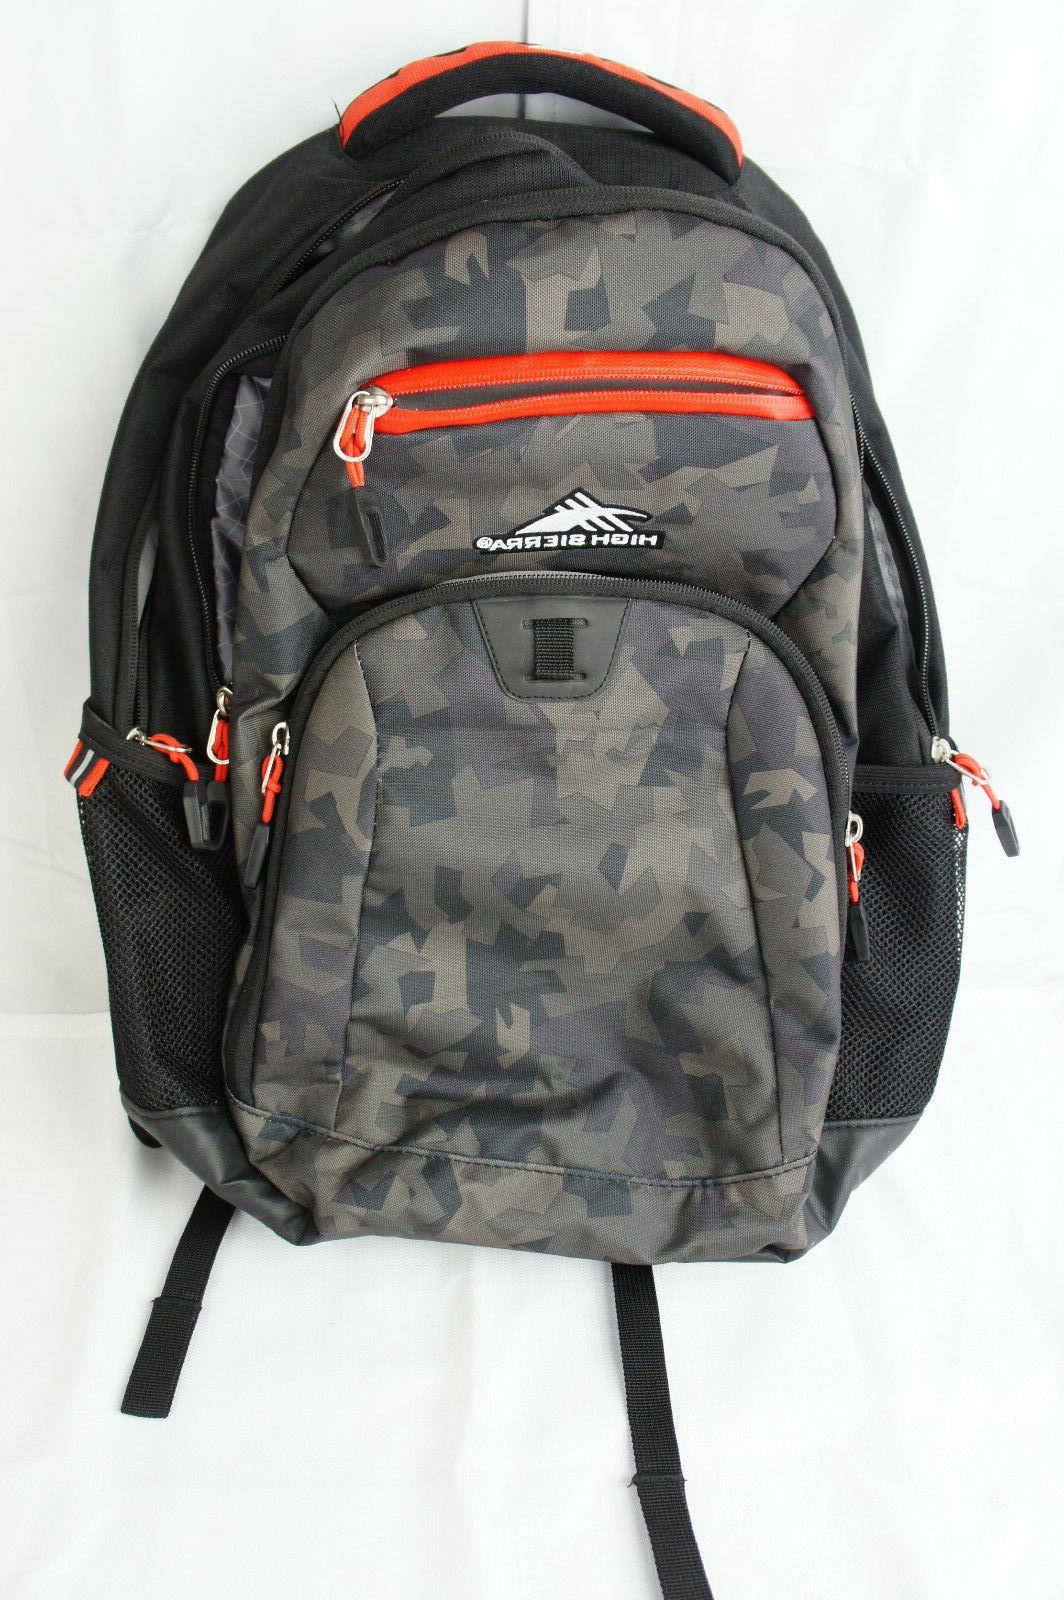 riprap lifestyle 20 backpack camo black holds